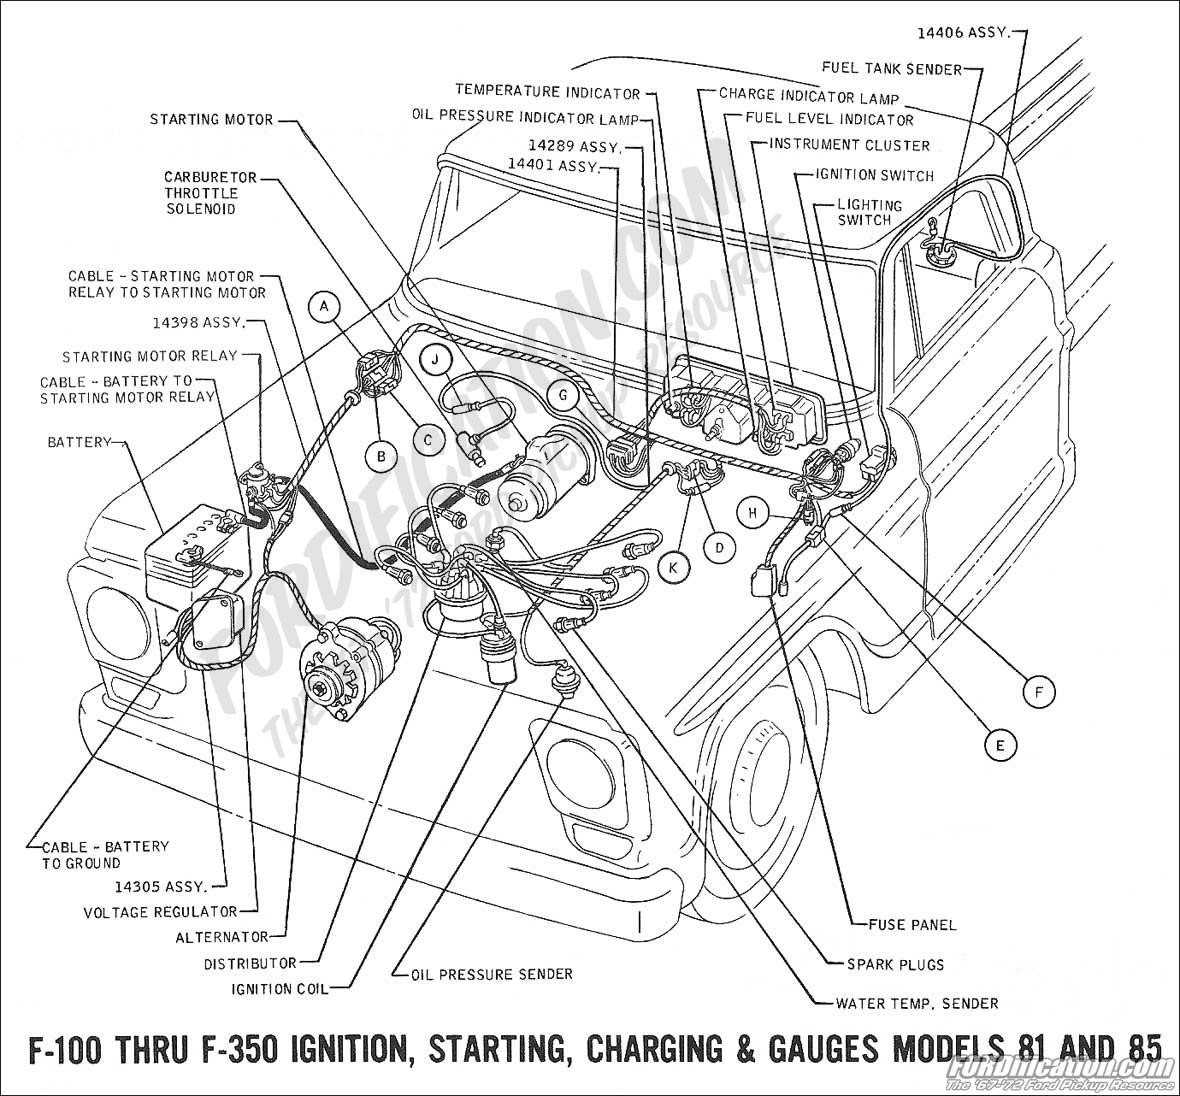 wiring 1969charging ford truck technical drawings and schematics section h wiring ford ignition wiring diagram at webbmarketing.co